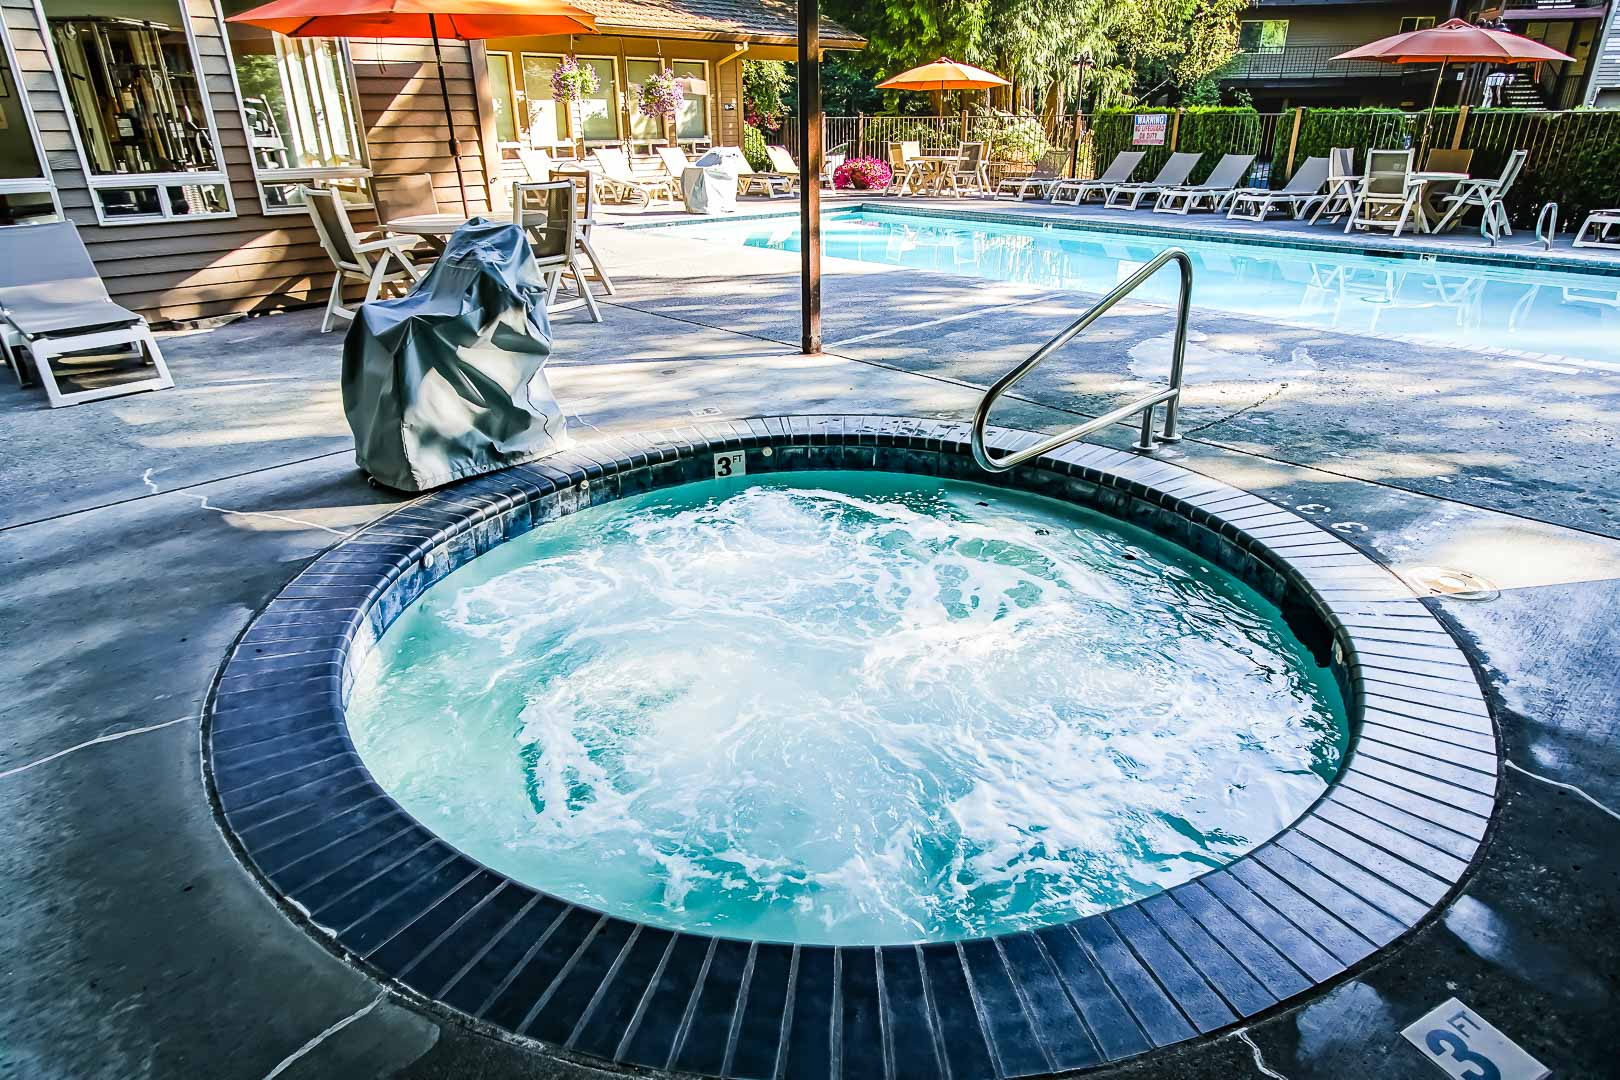 A relaxing outdoor Jacuzzi tub at VRI's Whispering Woods Resort in Oregon.